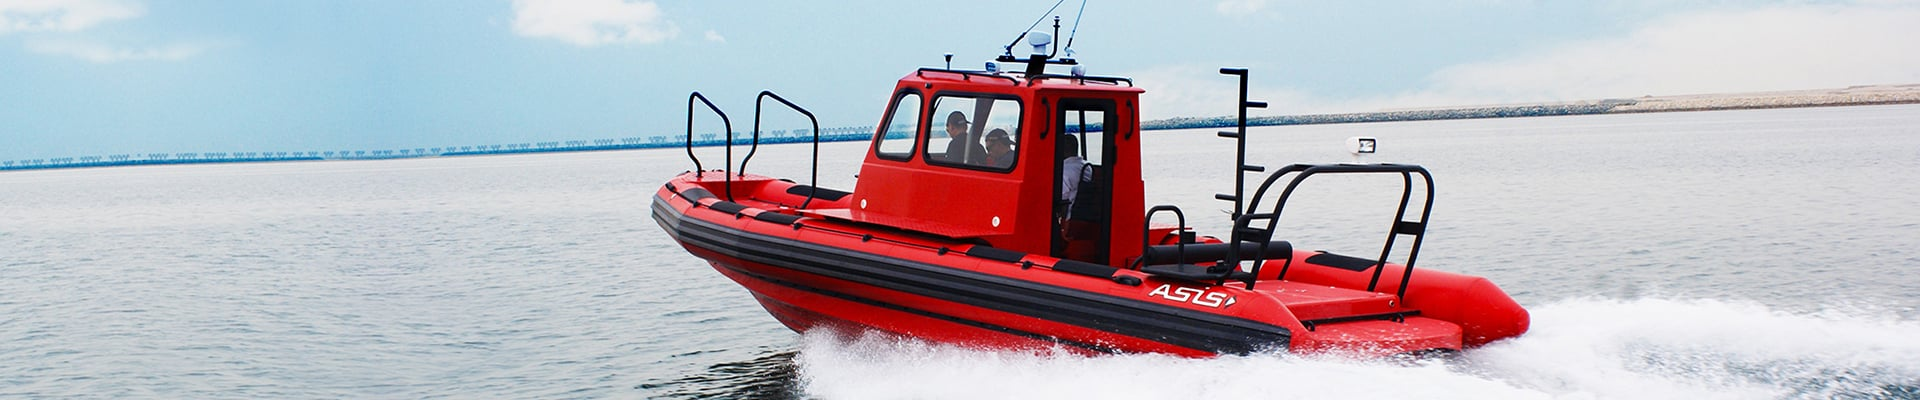 sail-support-rigid-inflatable-boat